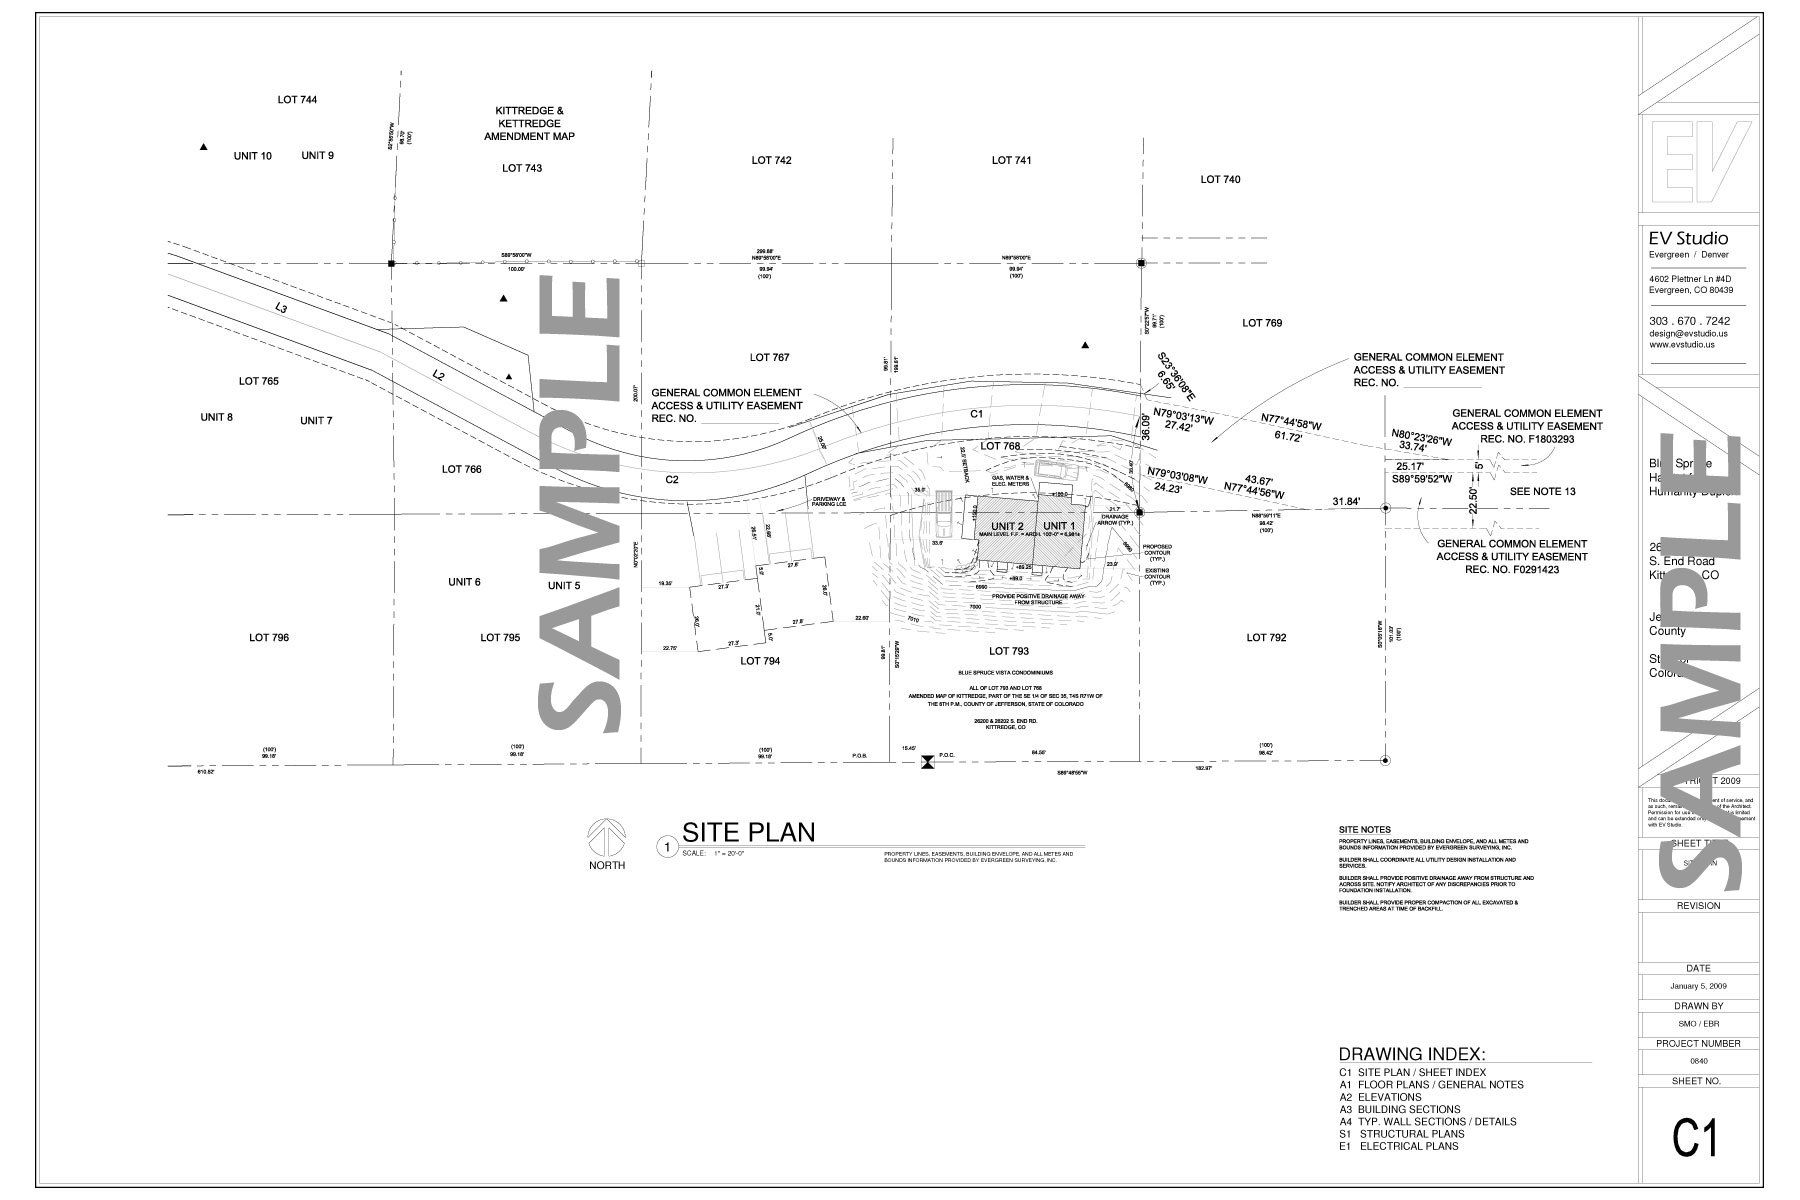 Blue spruce habitat for humanity duplex plans evstudio architect blue spruce habitat for humanity duplex plans evstudio architect engineer denver evergreen colorado austin texas architect malvernweather Images